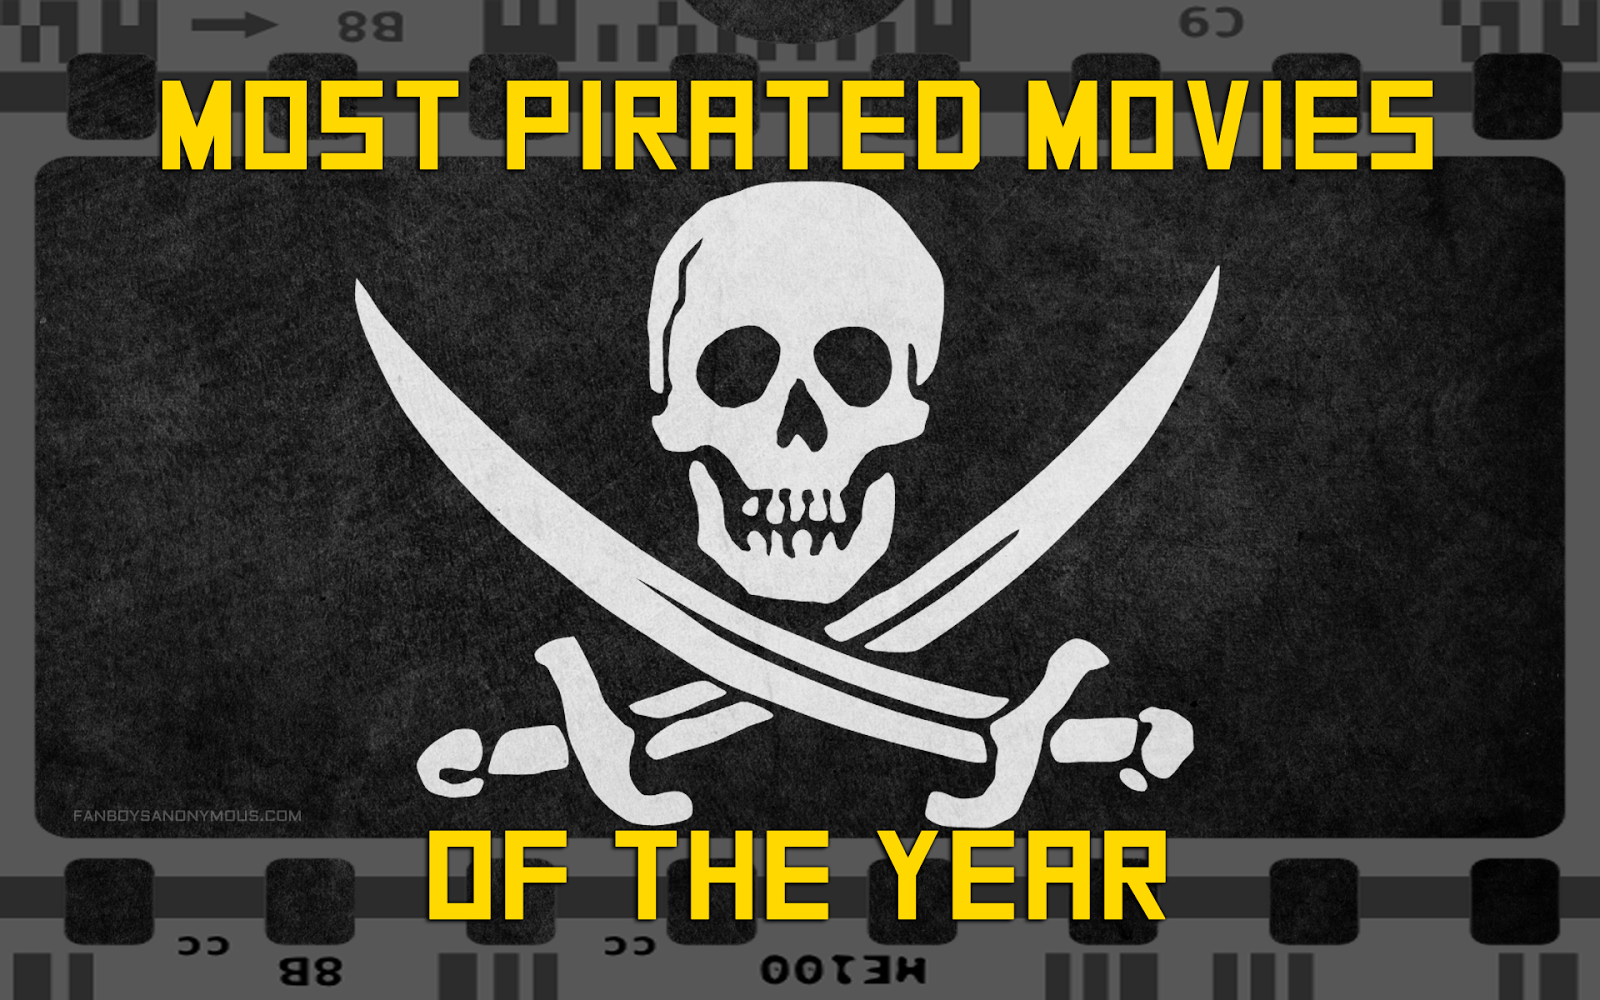 List of the most downloaded movies for 2014 on TorrentFreak